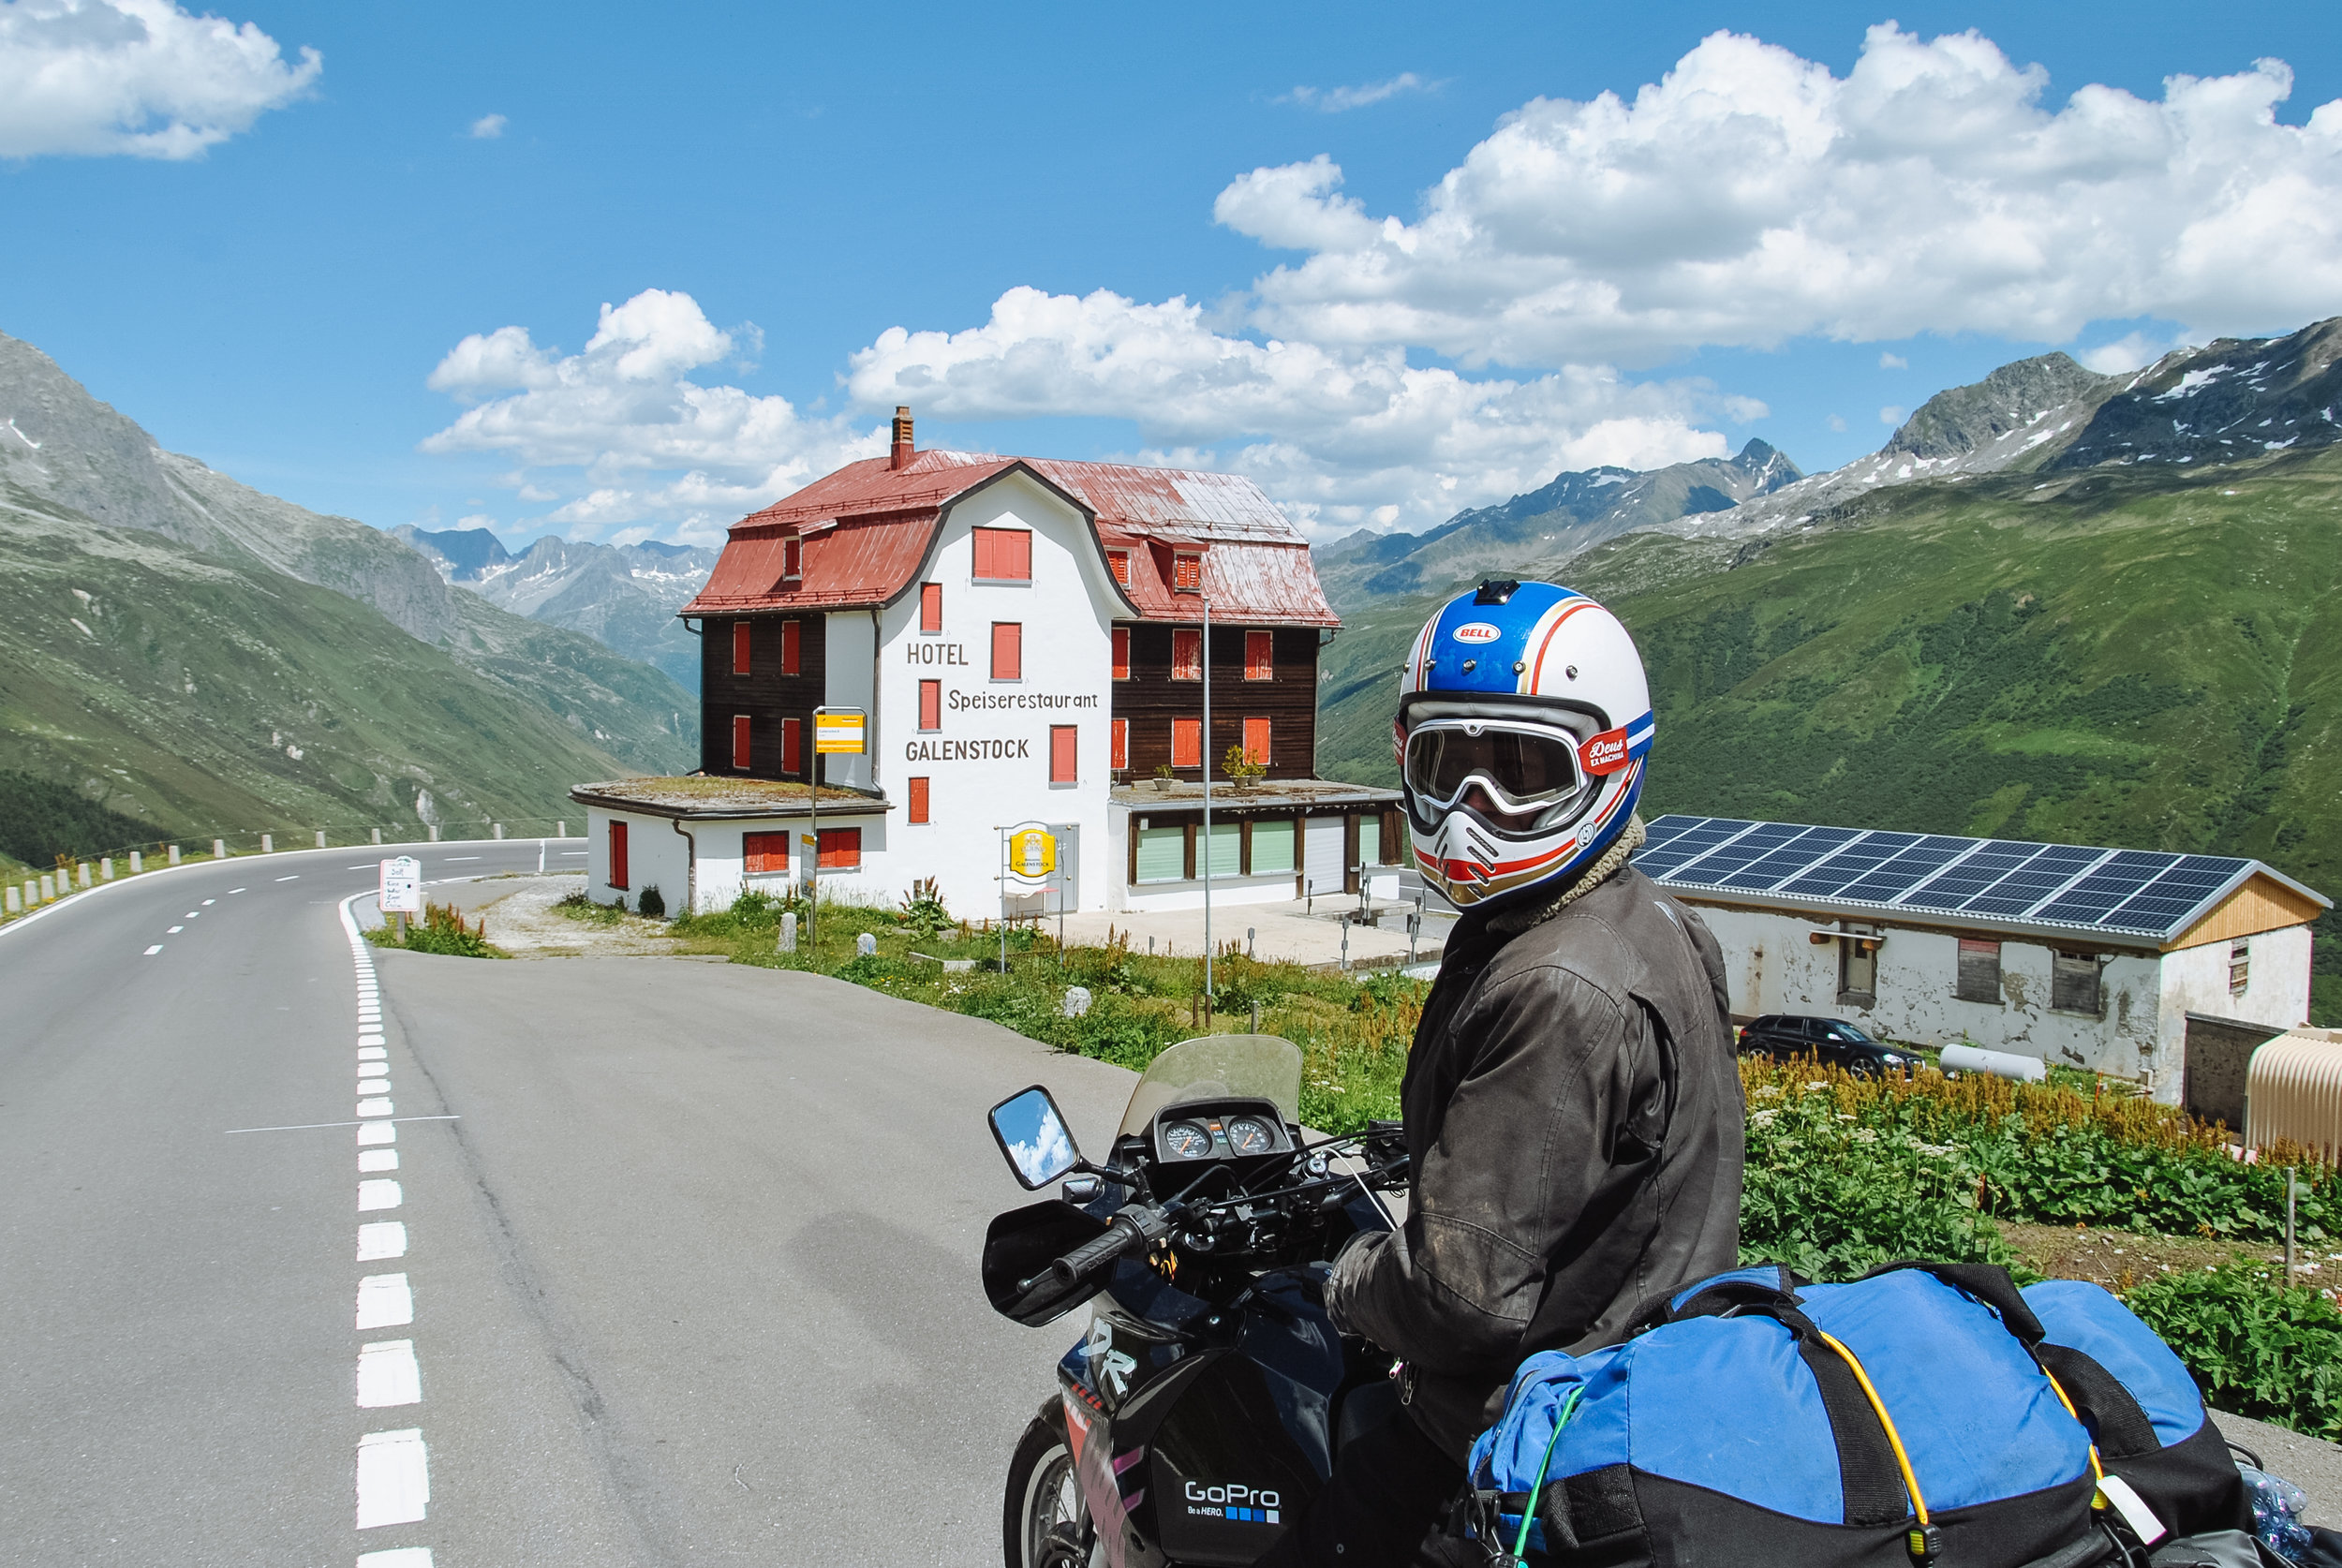 On the other side of the Furka Pass